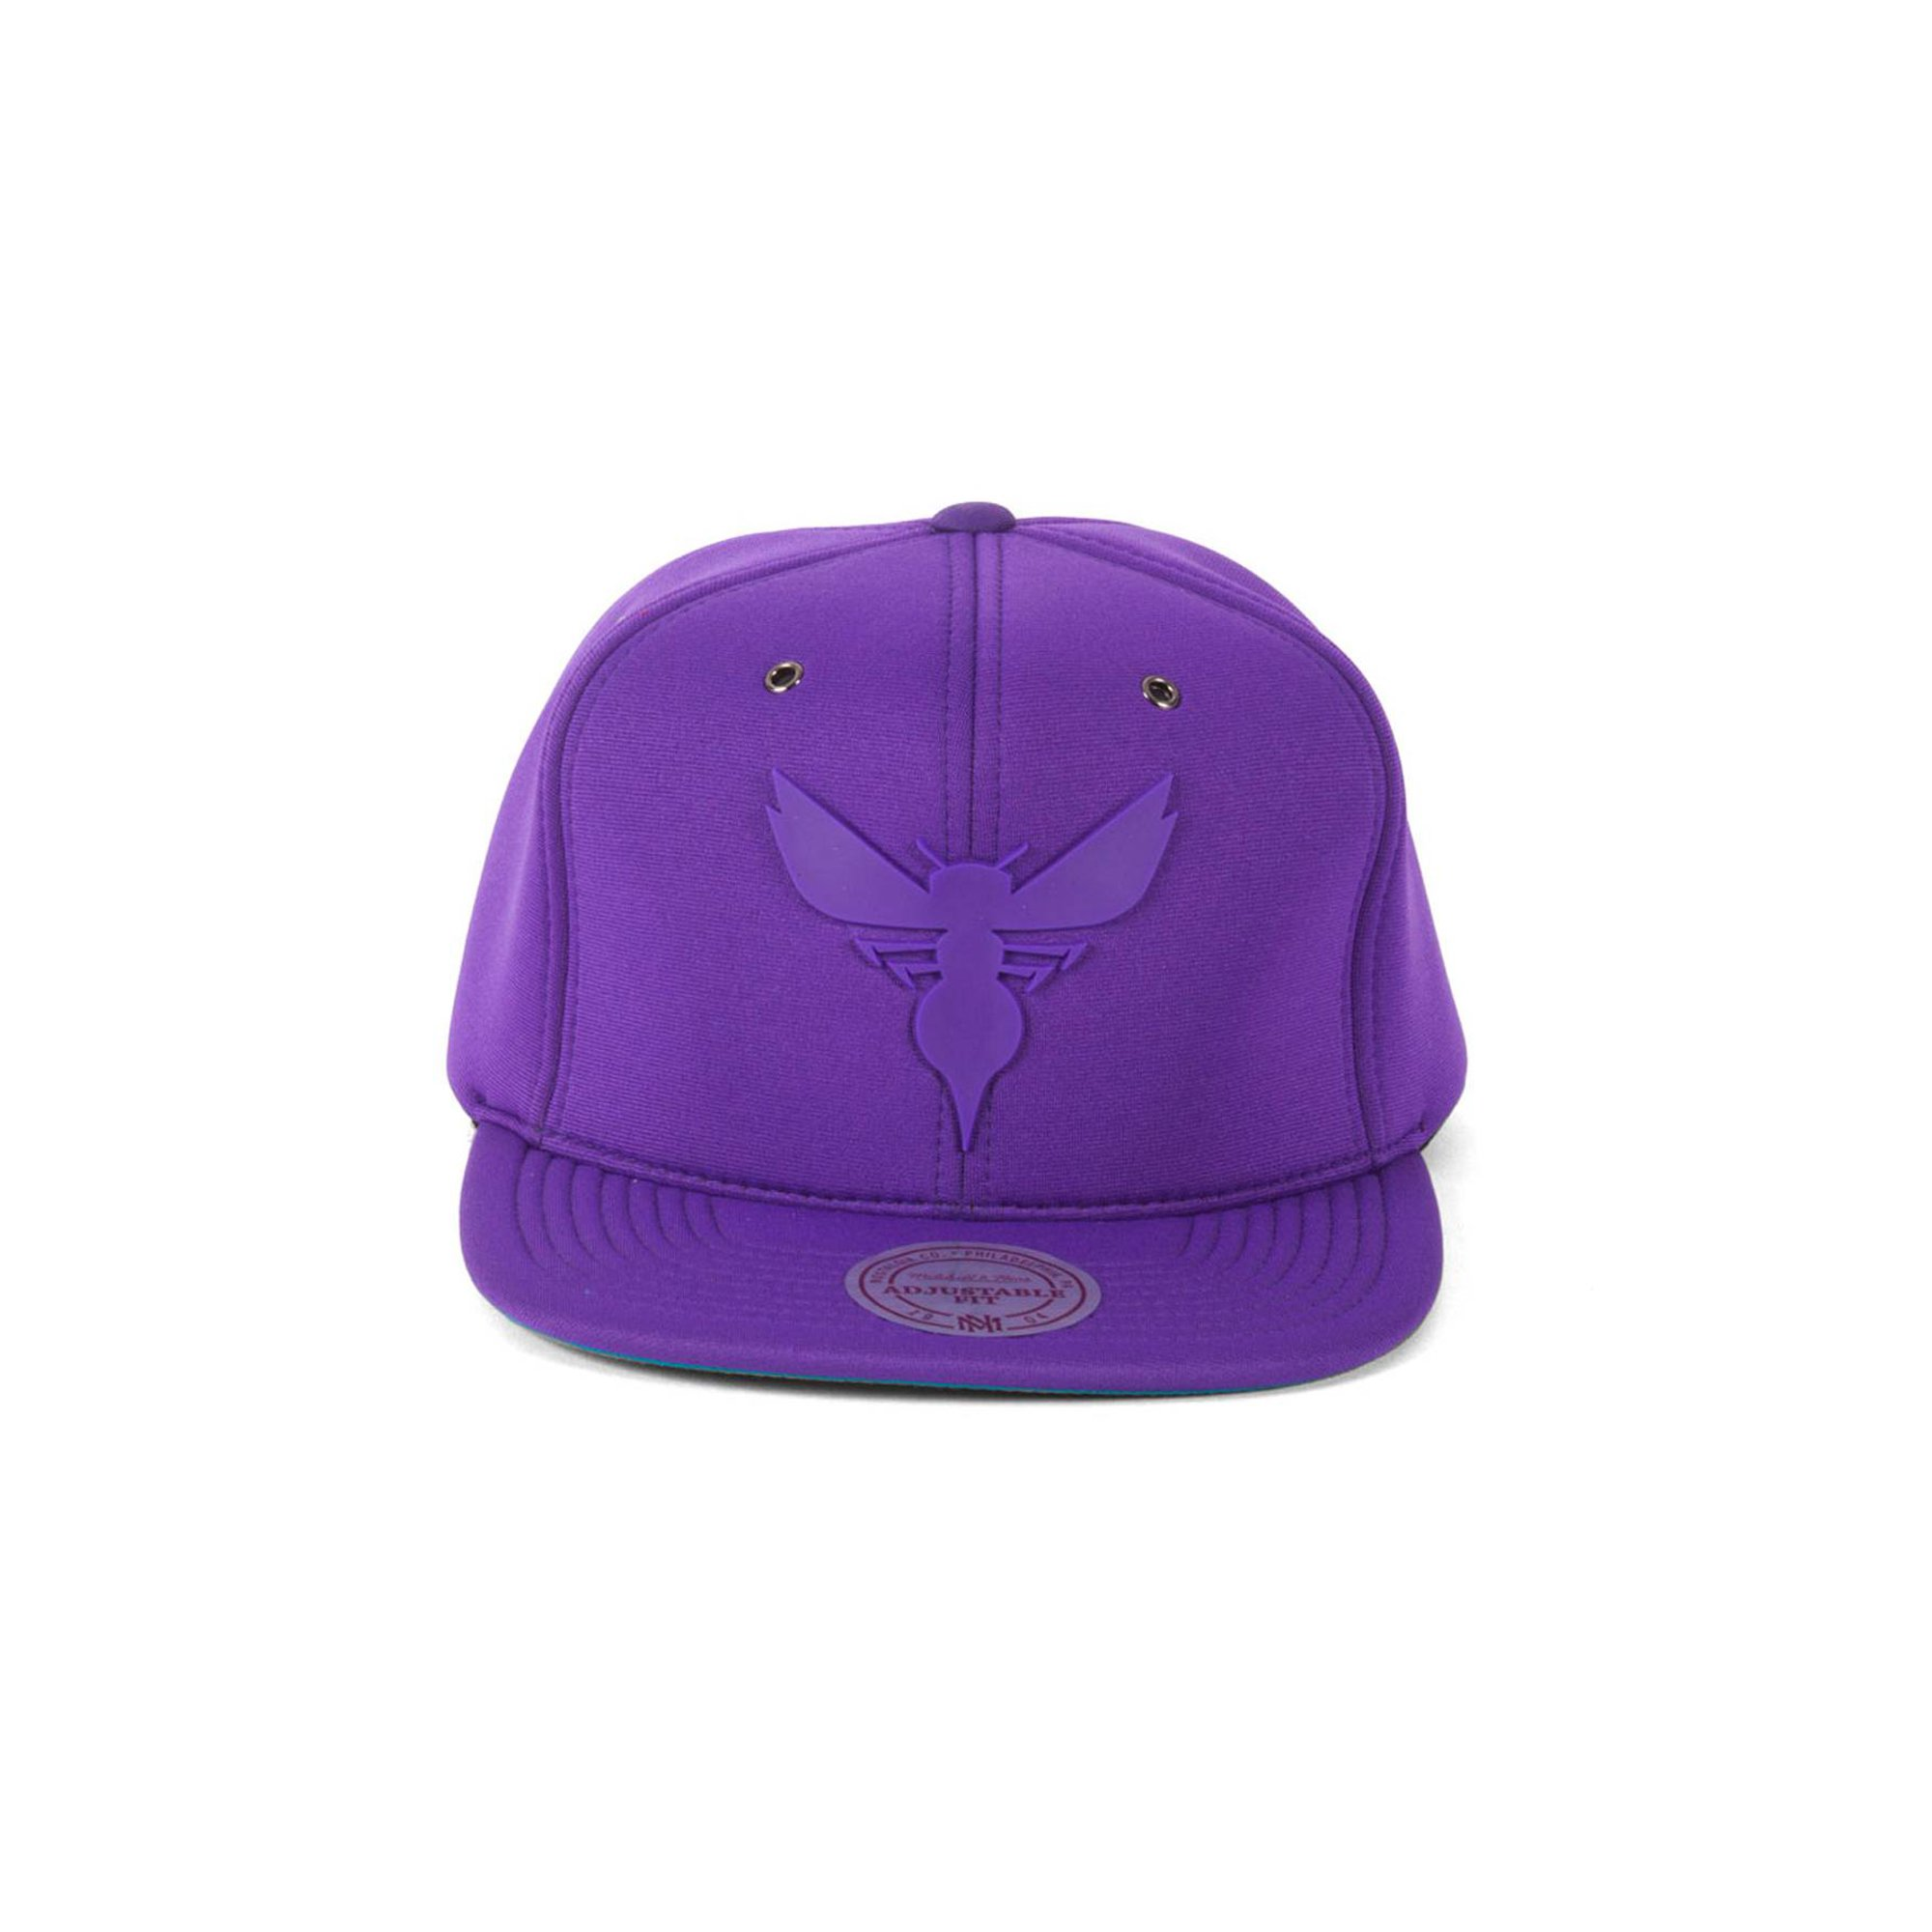 official photos 139cf 815ff Mitchell & Ness Charlotte Hornets Purple Neoprene Adjustable Cap